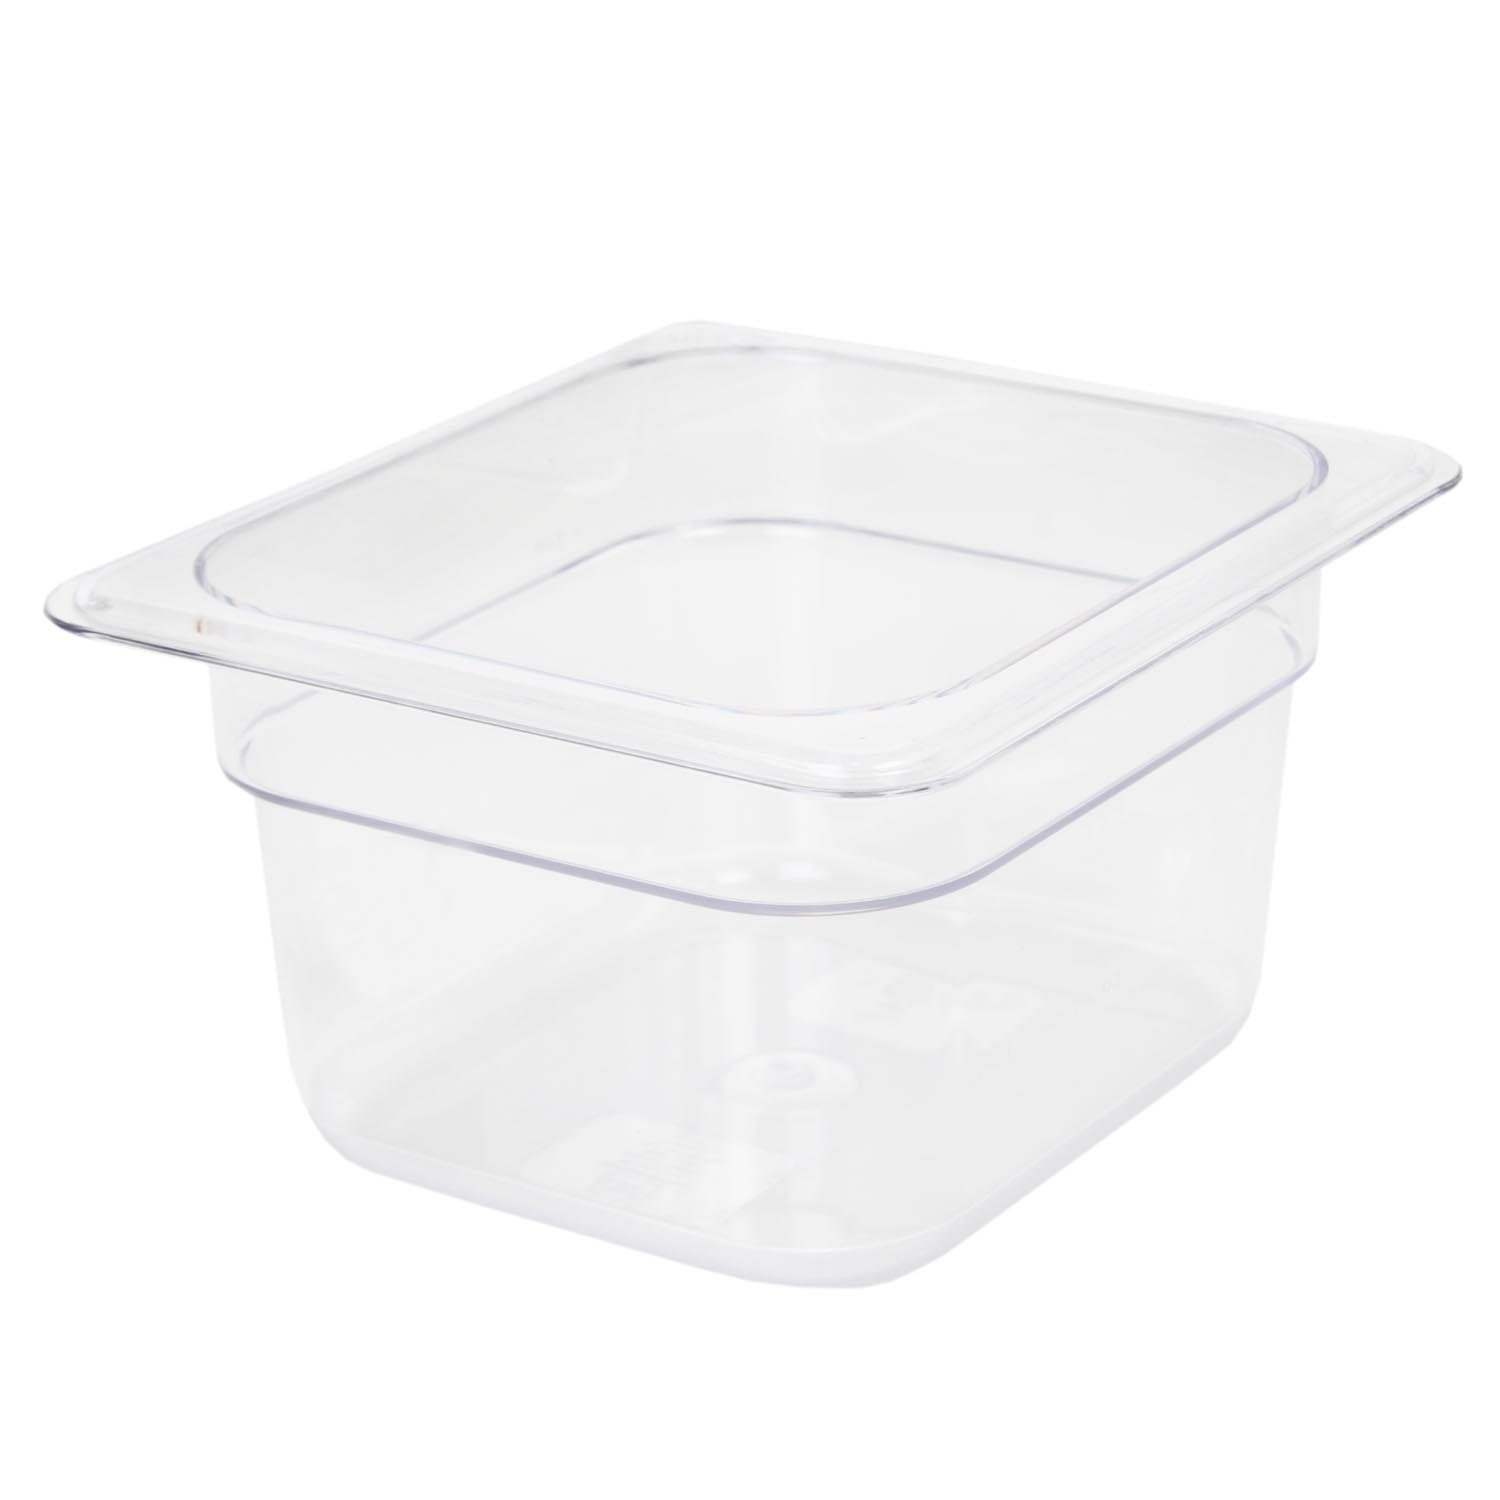 Excellante 849851007246 Deep Polycarbonate Food Pan, 4'', Sixth Size